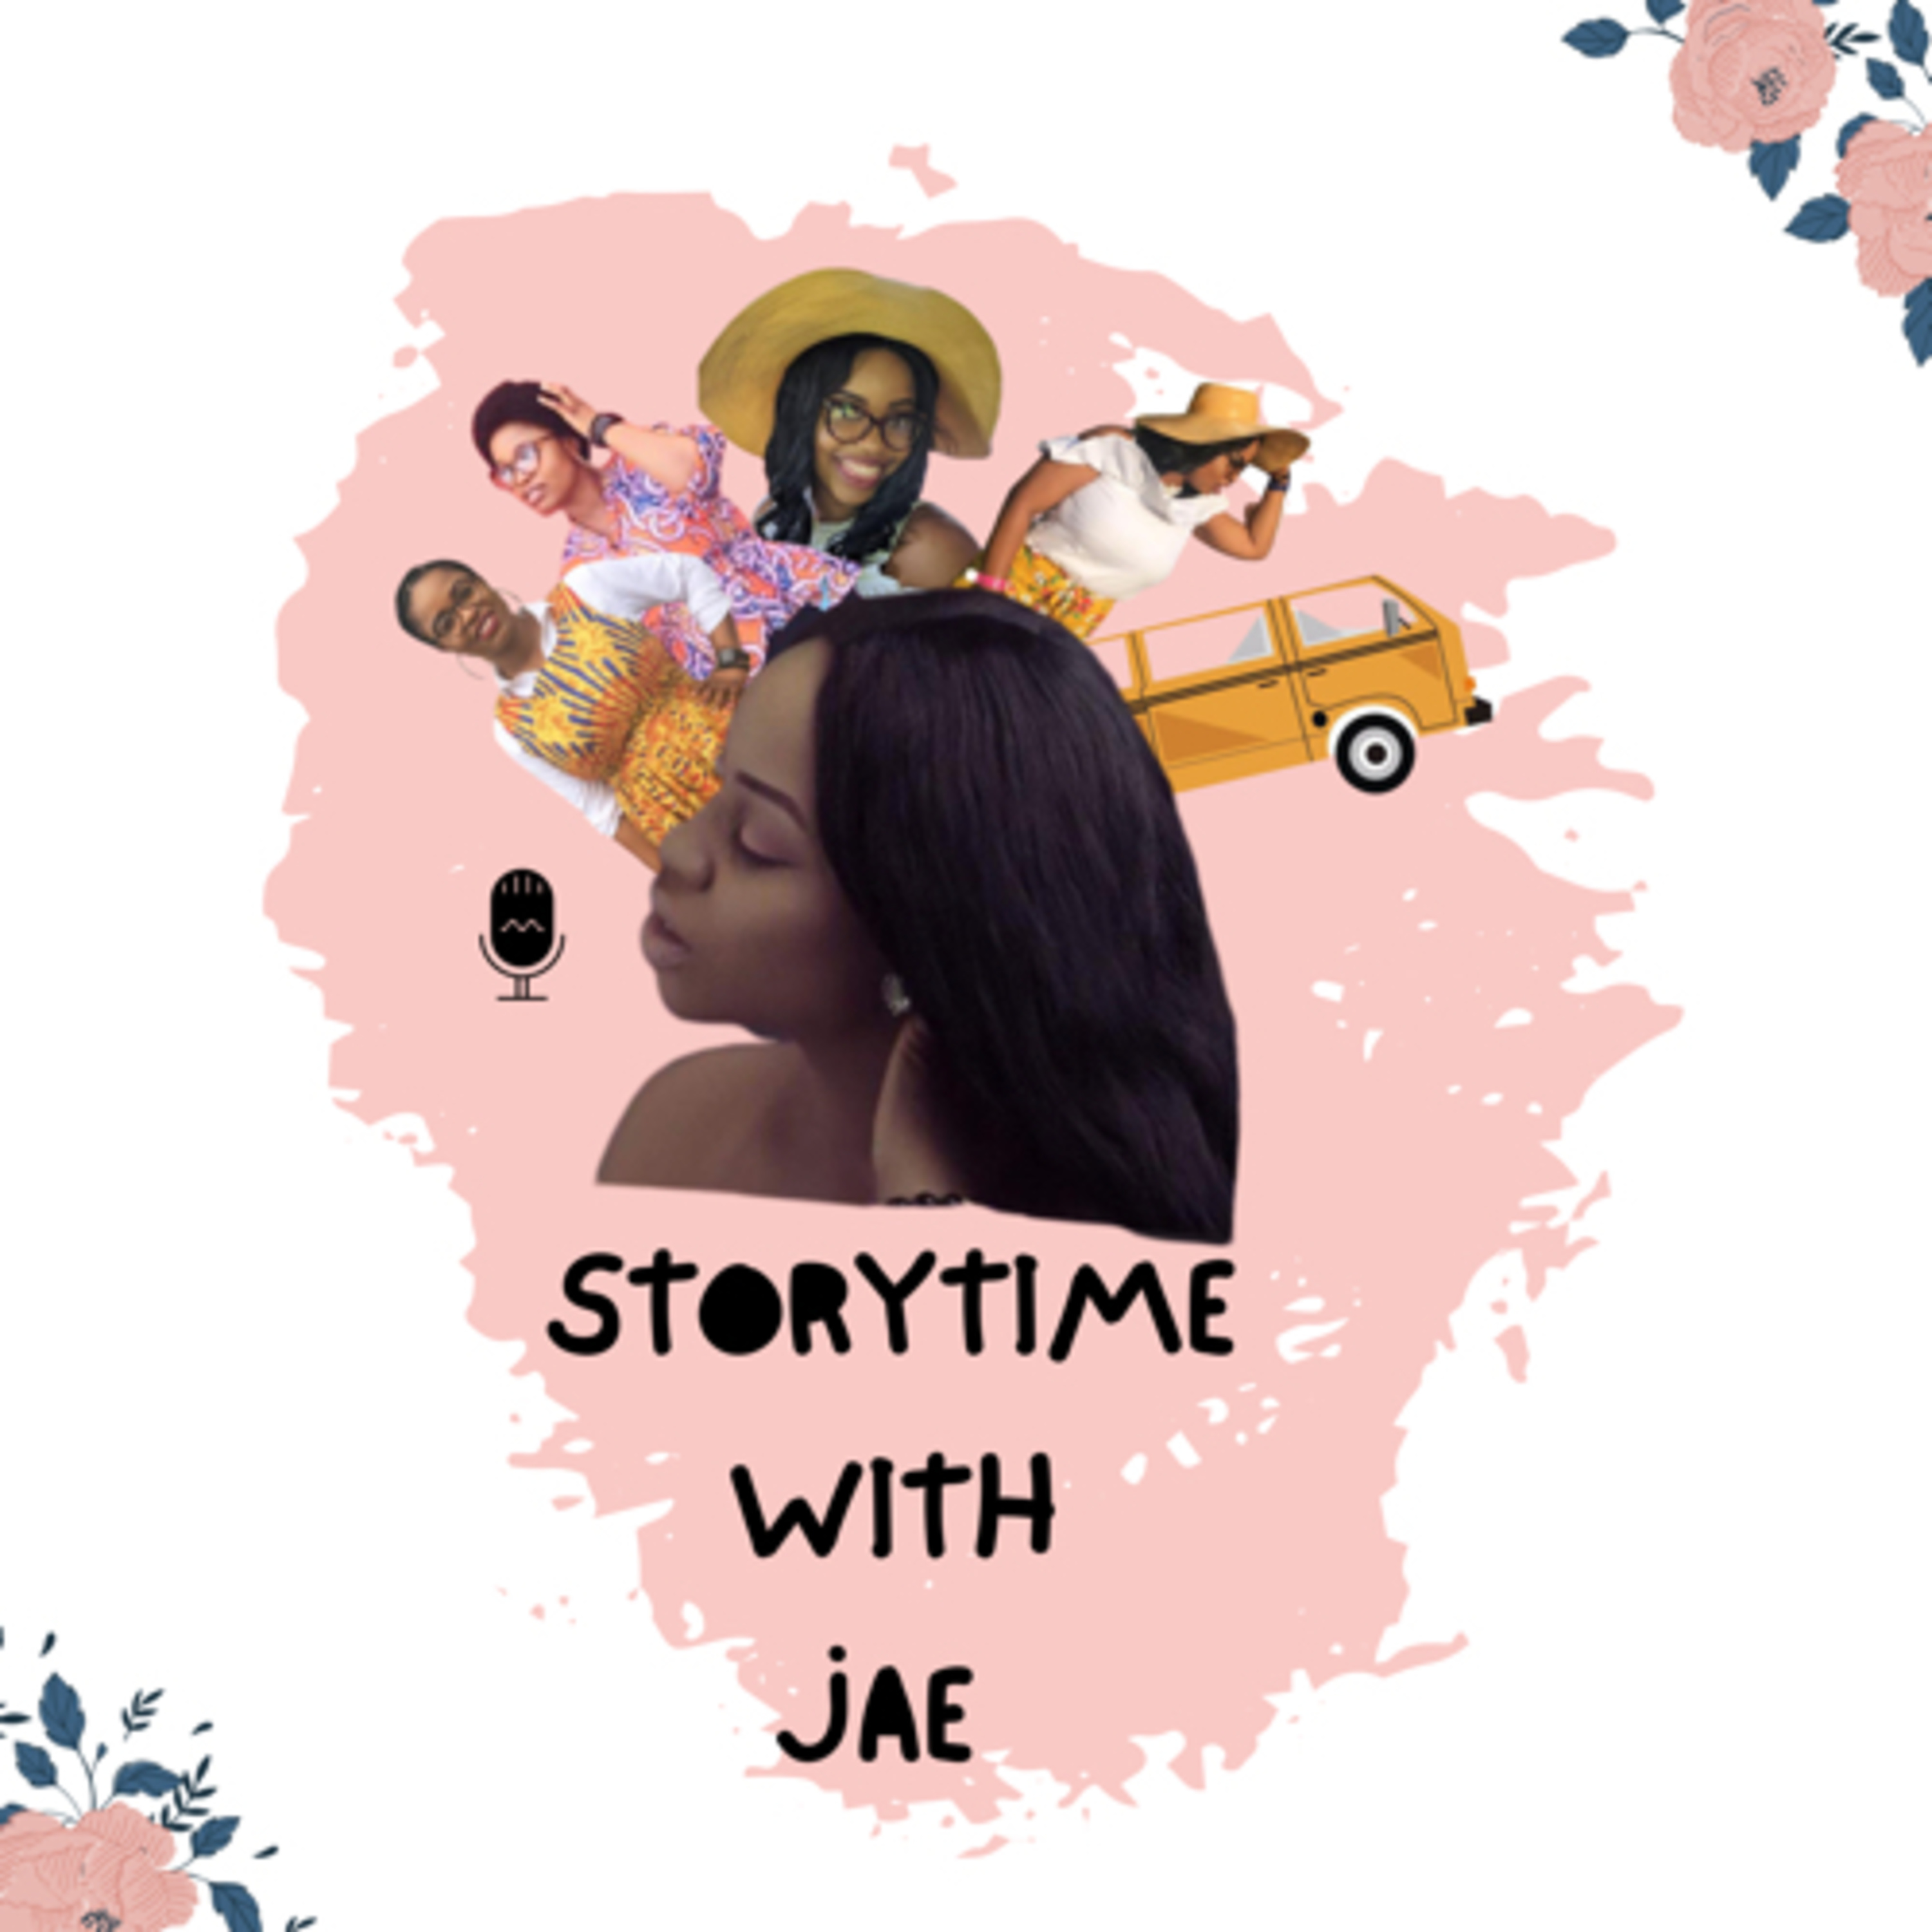 Story time with Jae on Jamit